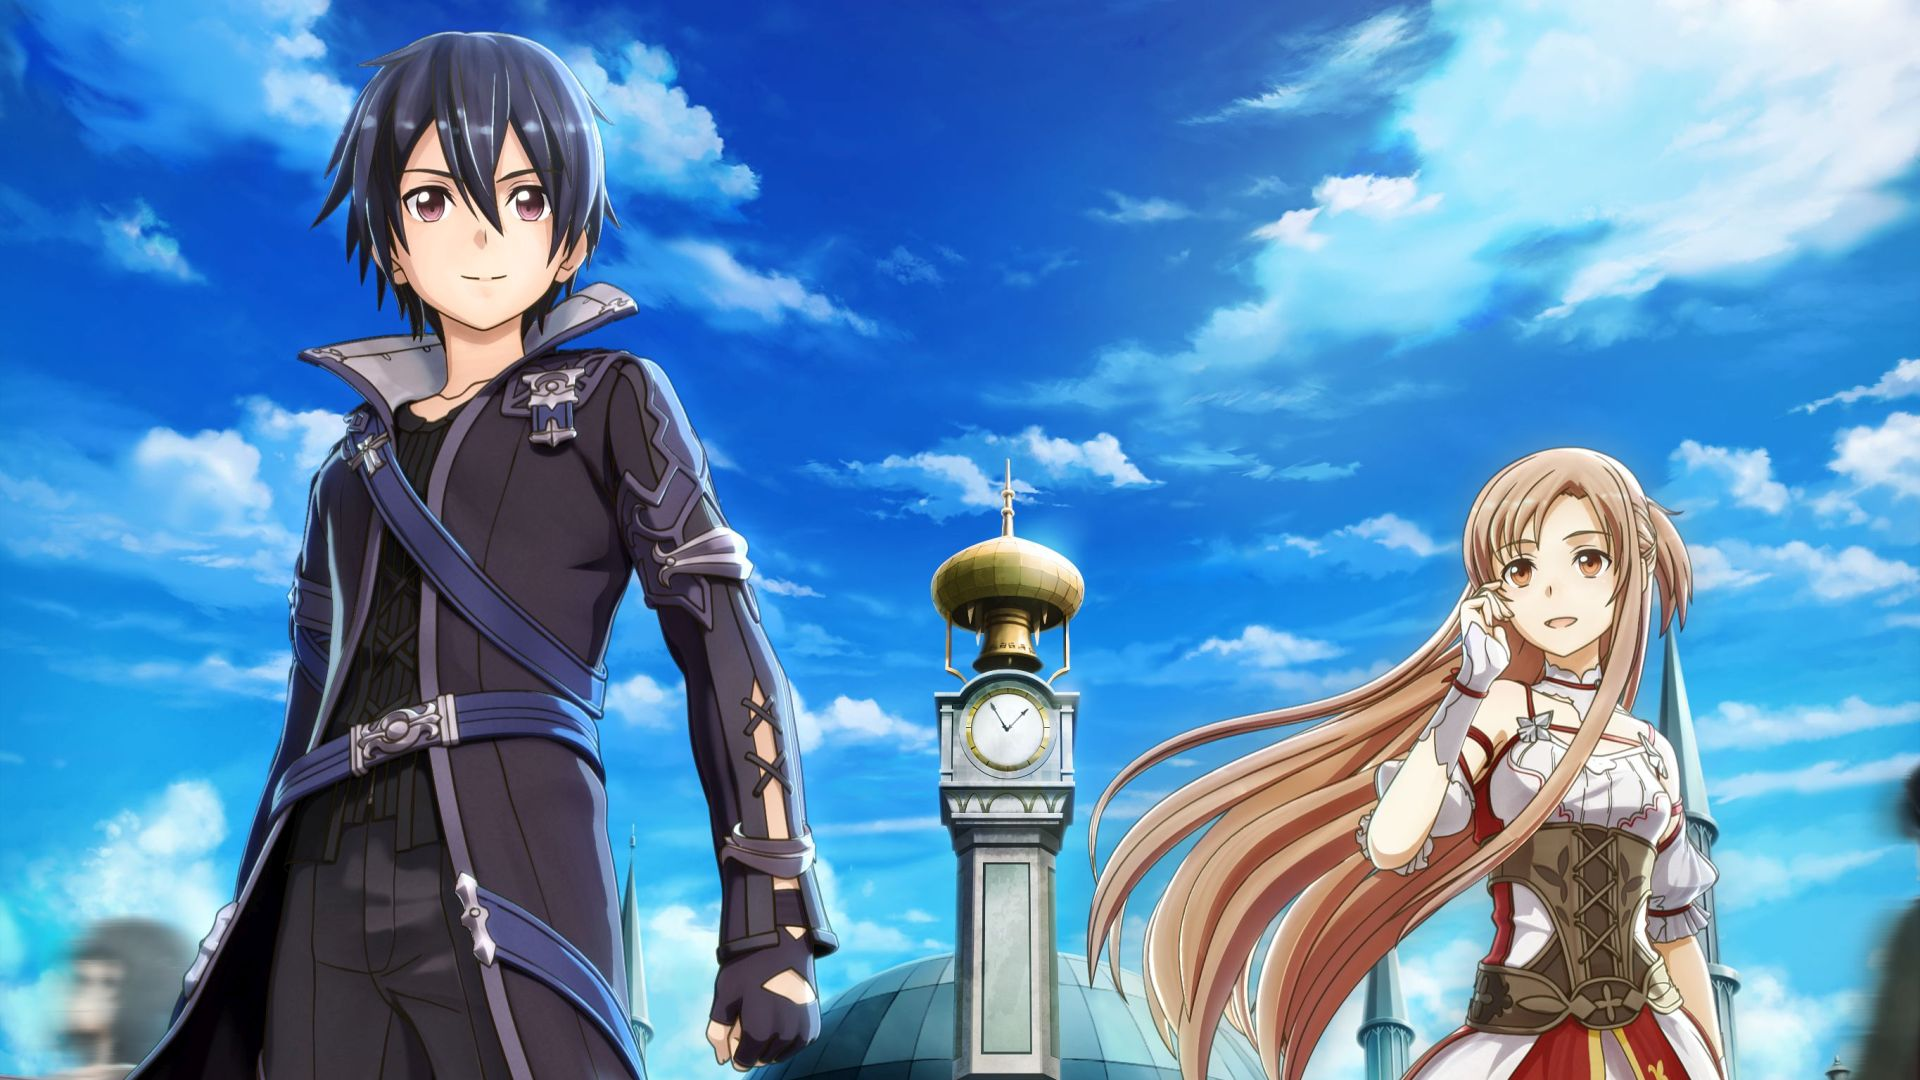 Review: Sword Art Online: Hollow Realization